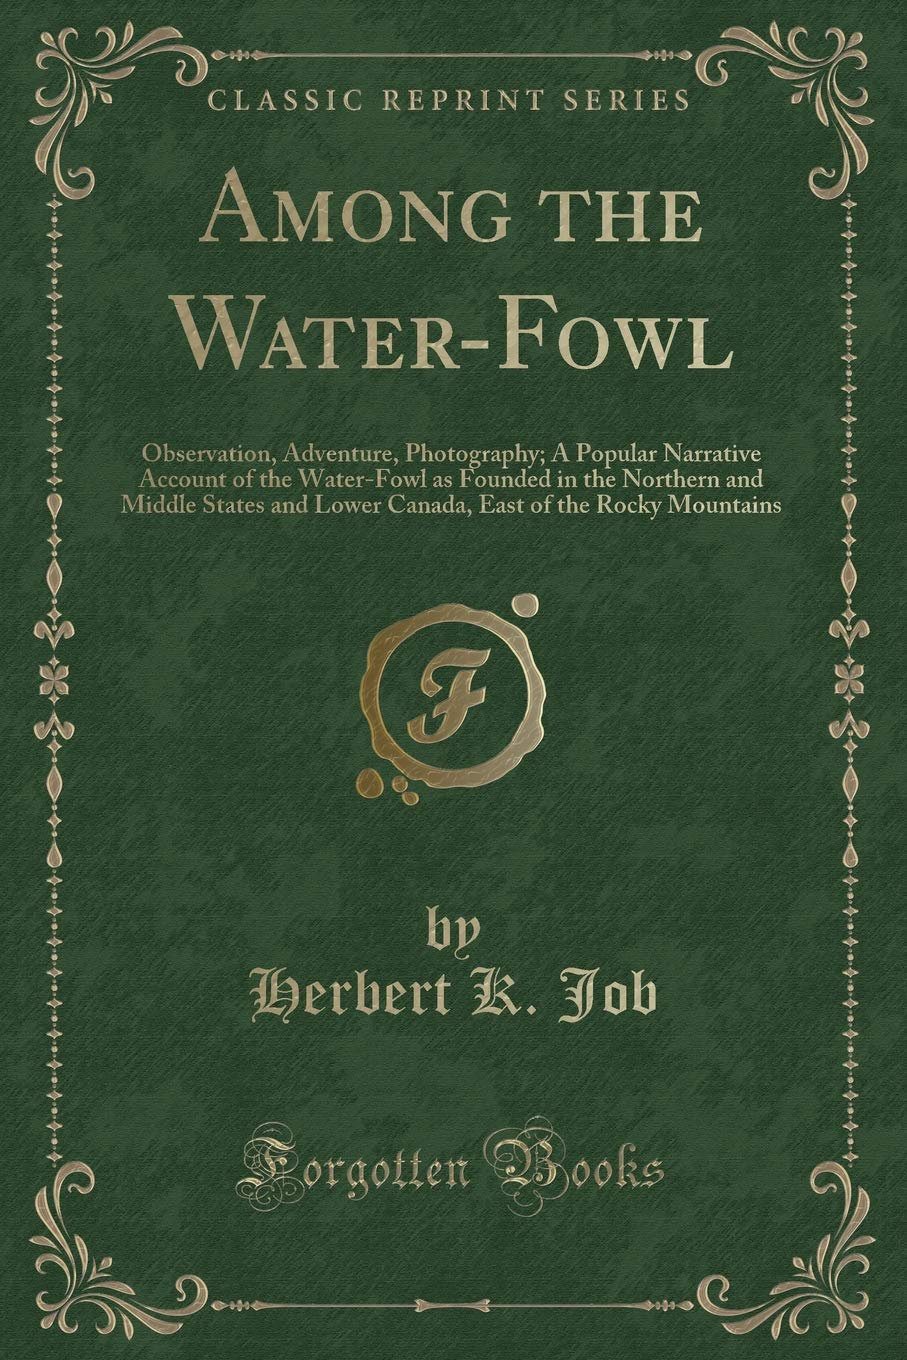 Among the Water-Fowl: Observation, Adventure, Photography; A Popular Narrative Account of the Water-Fowl as Founded in the Northern and Middle States ... East of the Rocky Mountains (Classic Reprint) PDF